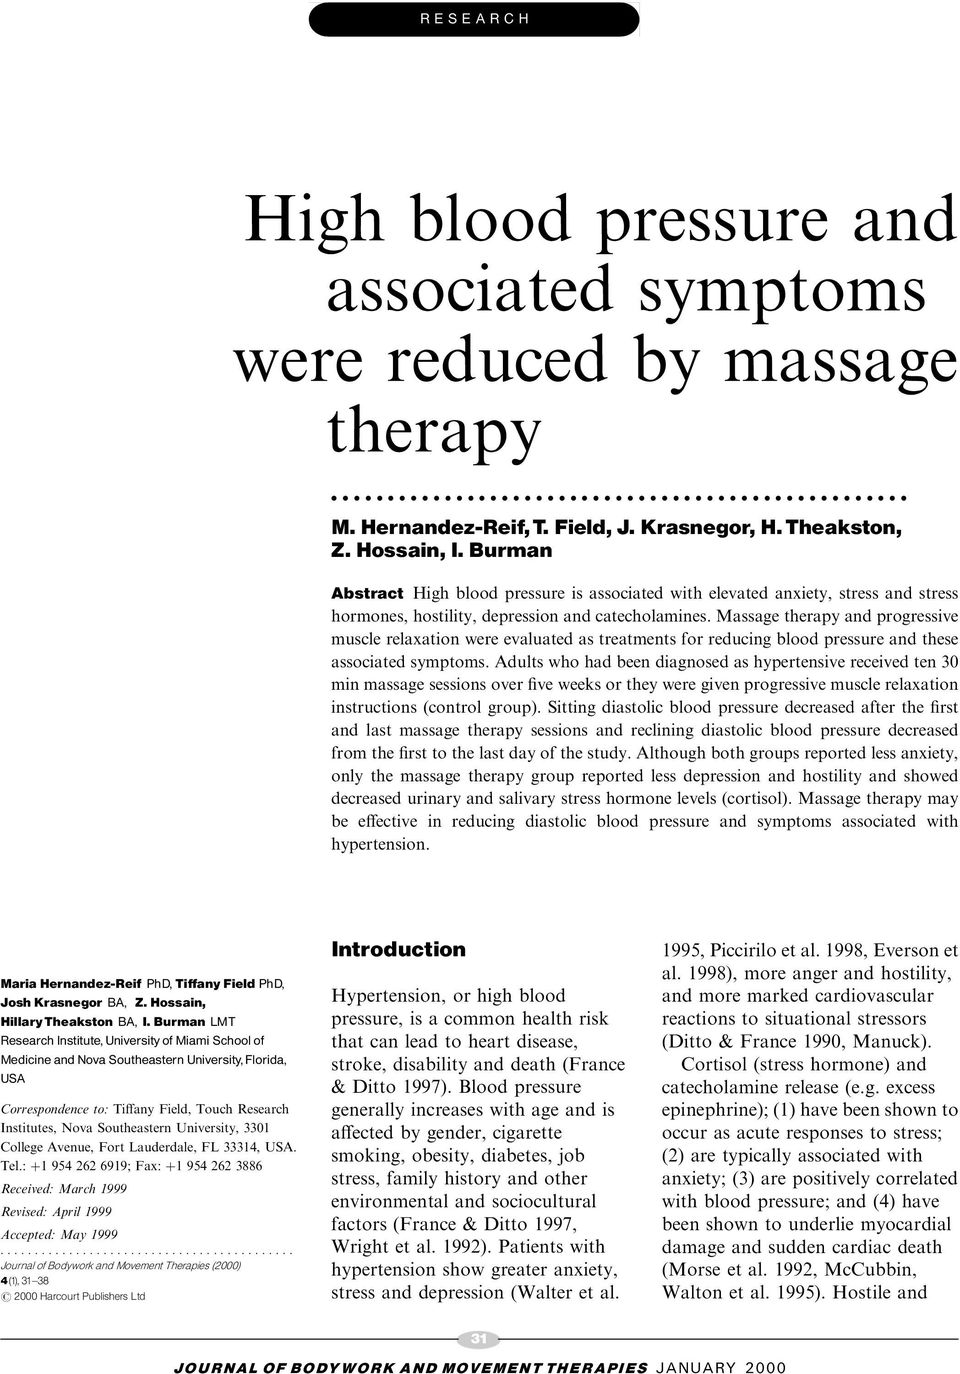 Massage therapy and progressive muscle relaxation were evaluated as treatments for reducing blood pressure and these associated symptoms.